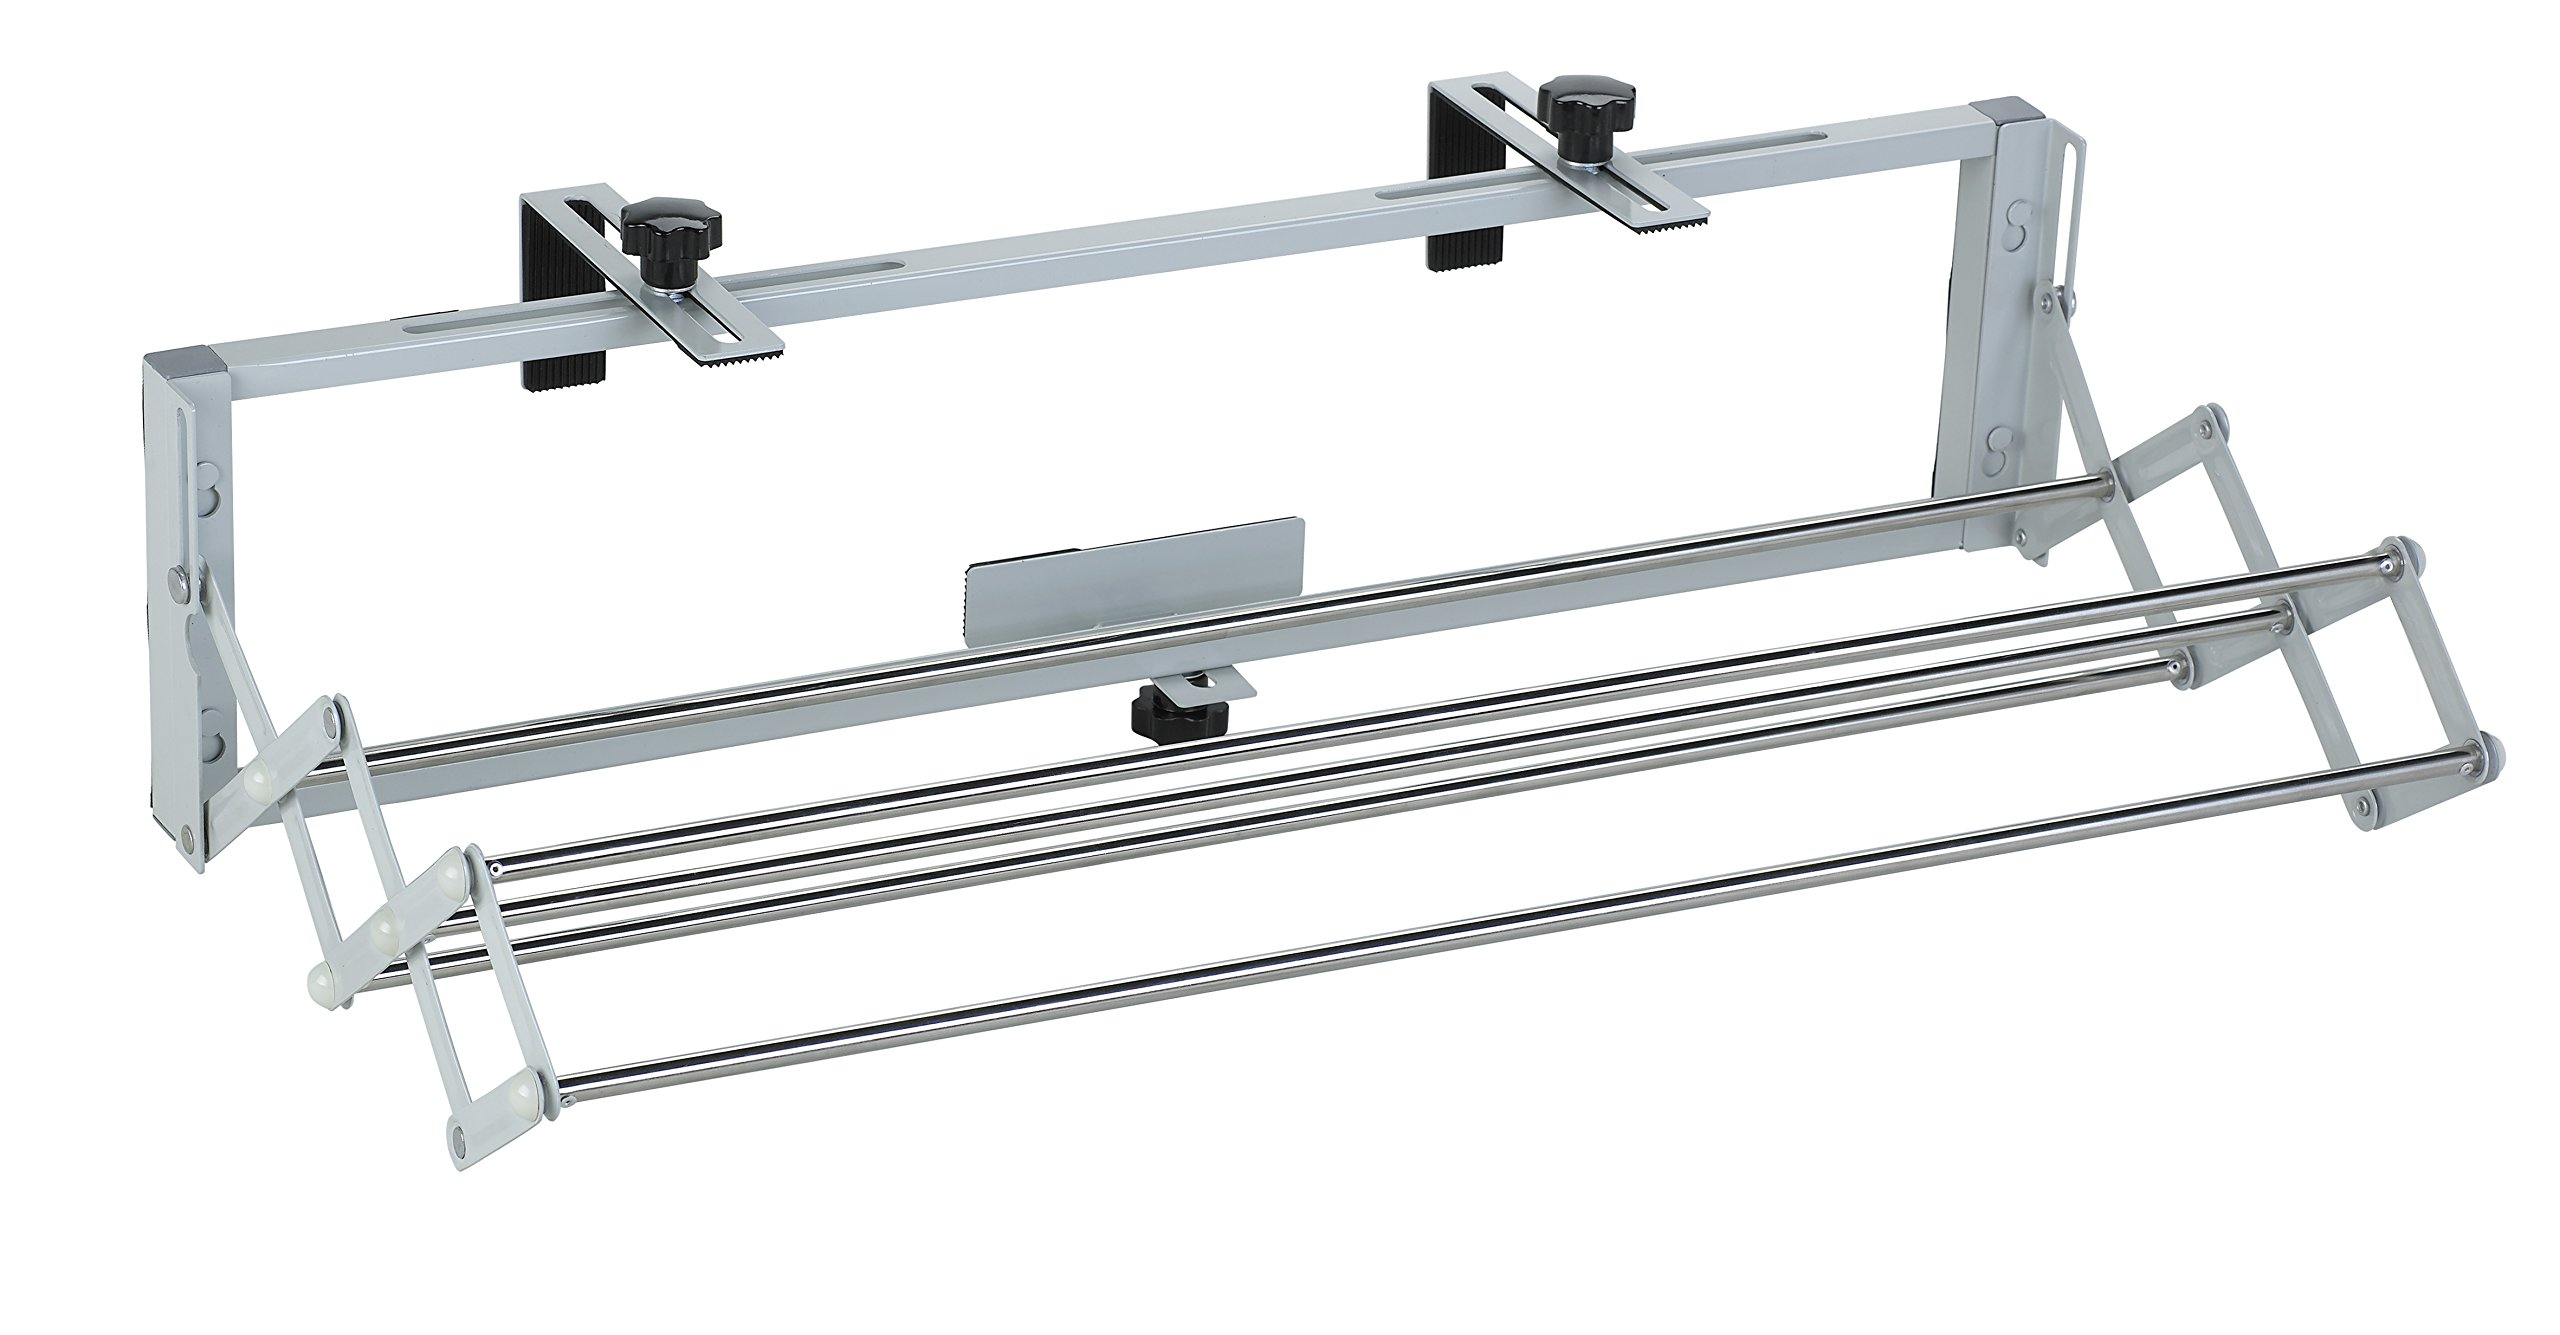 The Original Smartdryer Indoor/Outdoor Retractable Clothes Drying Rack - Ideal for Your RV, Balcony, Pool Side or Laundry Room - Compact Version - 31 Inch - VERSATILE: For outdoor use on balconies, ramps, fences and any type of recreational vehicles but as well for Indoor use, wall mounted if desired RETRACTABLE = Space saver EASY TO INSTALL: Unique patented easy to install grips that can be adjusted in length and width to fit on any type of balcony, ramp, RV ladder - laundry-room, entryway-laundry-room, drying-racks - 71iOp%2BeYs%2BL -